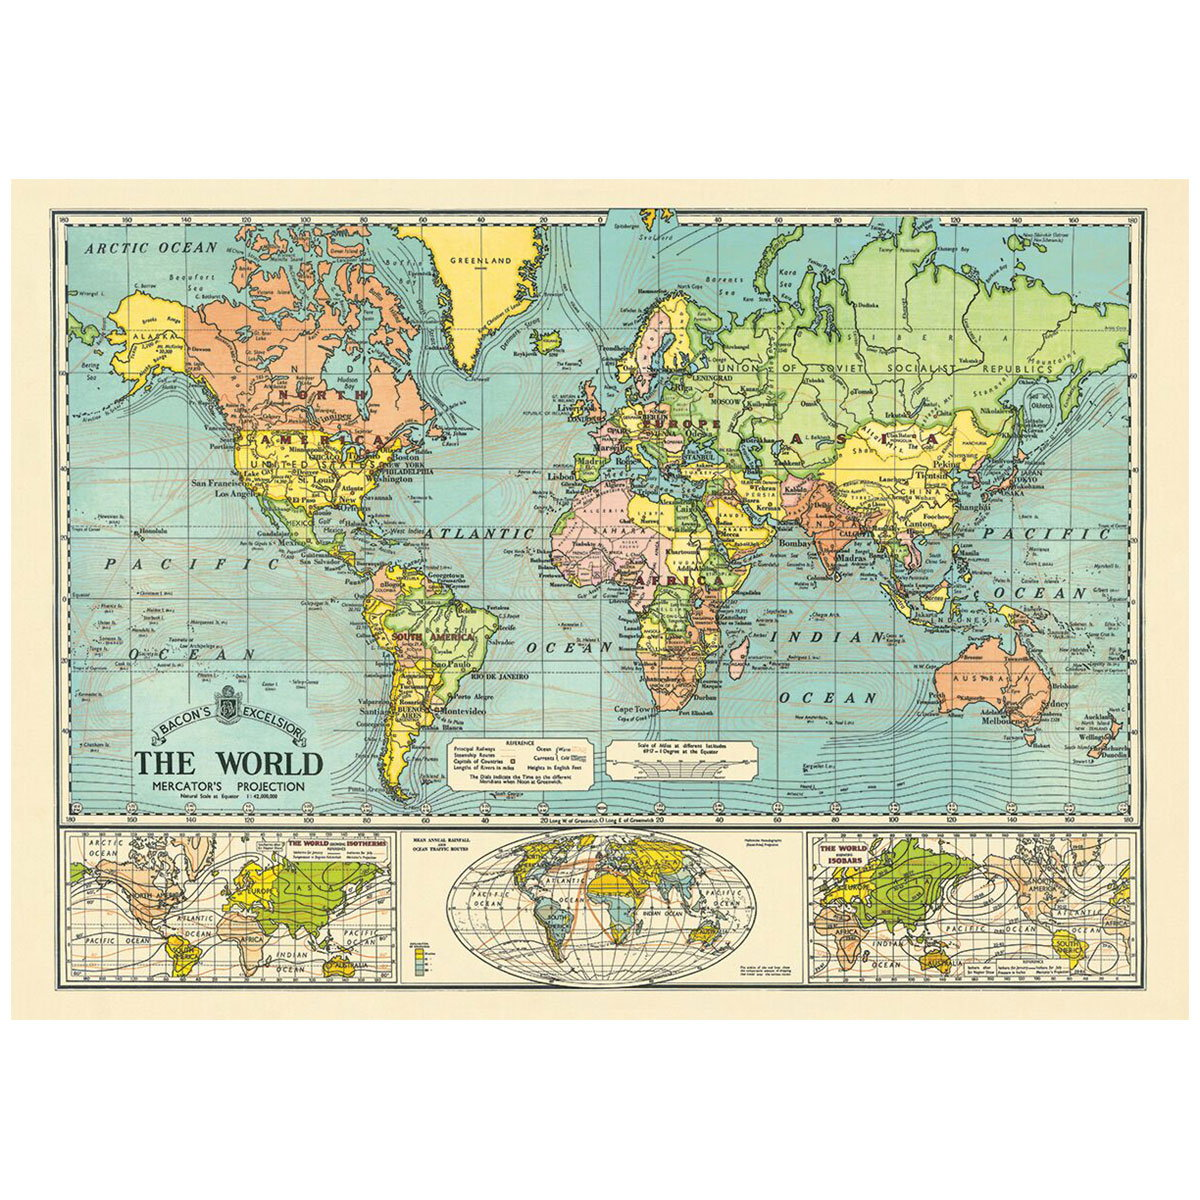 Bacons world map vintage style poster decorative paper bacons world map vintage style poster close video gumiabroncs Images